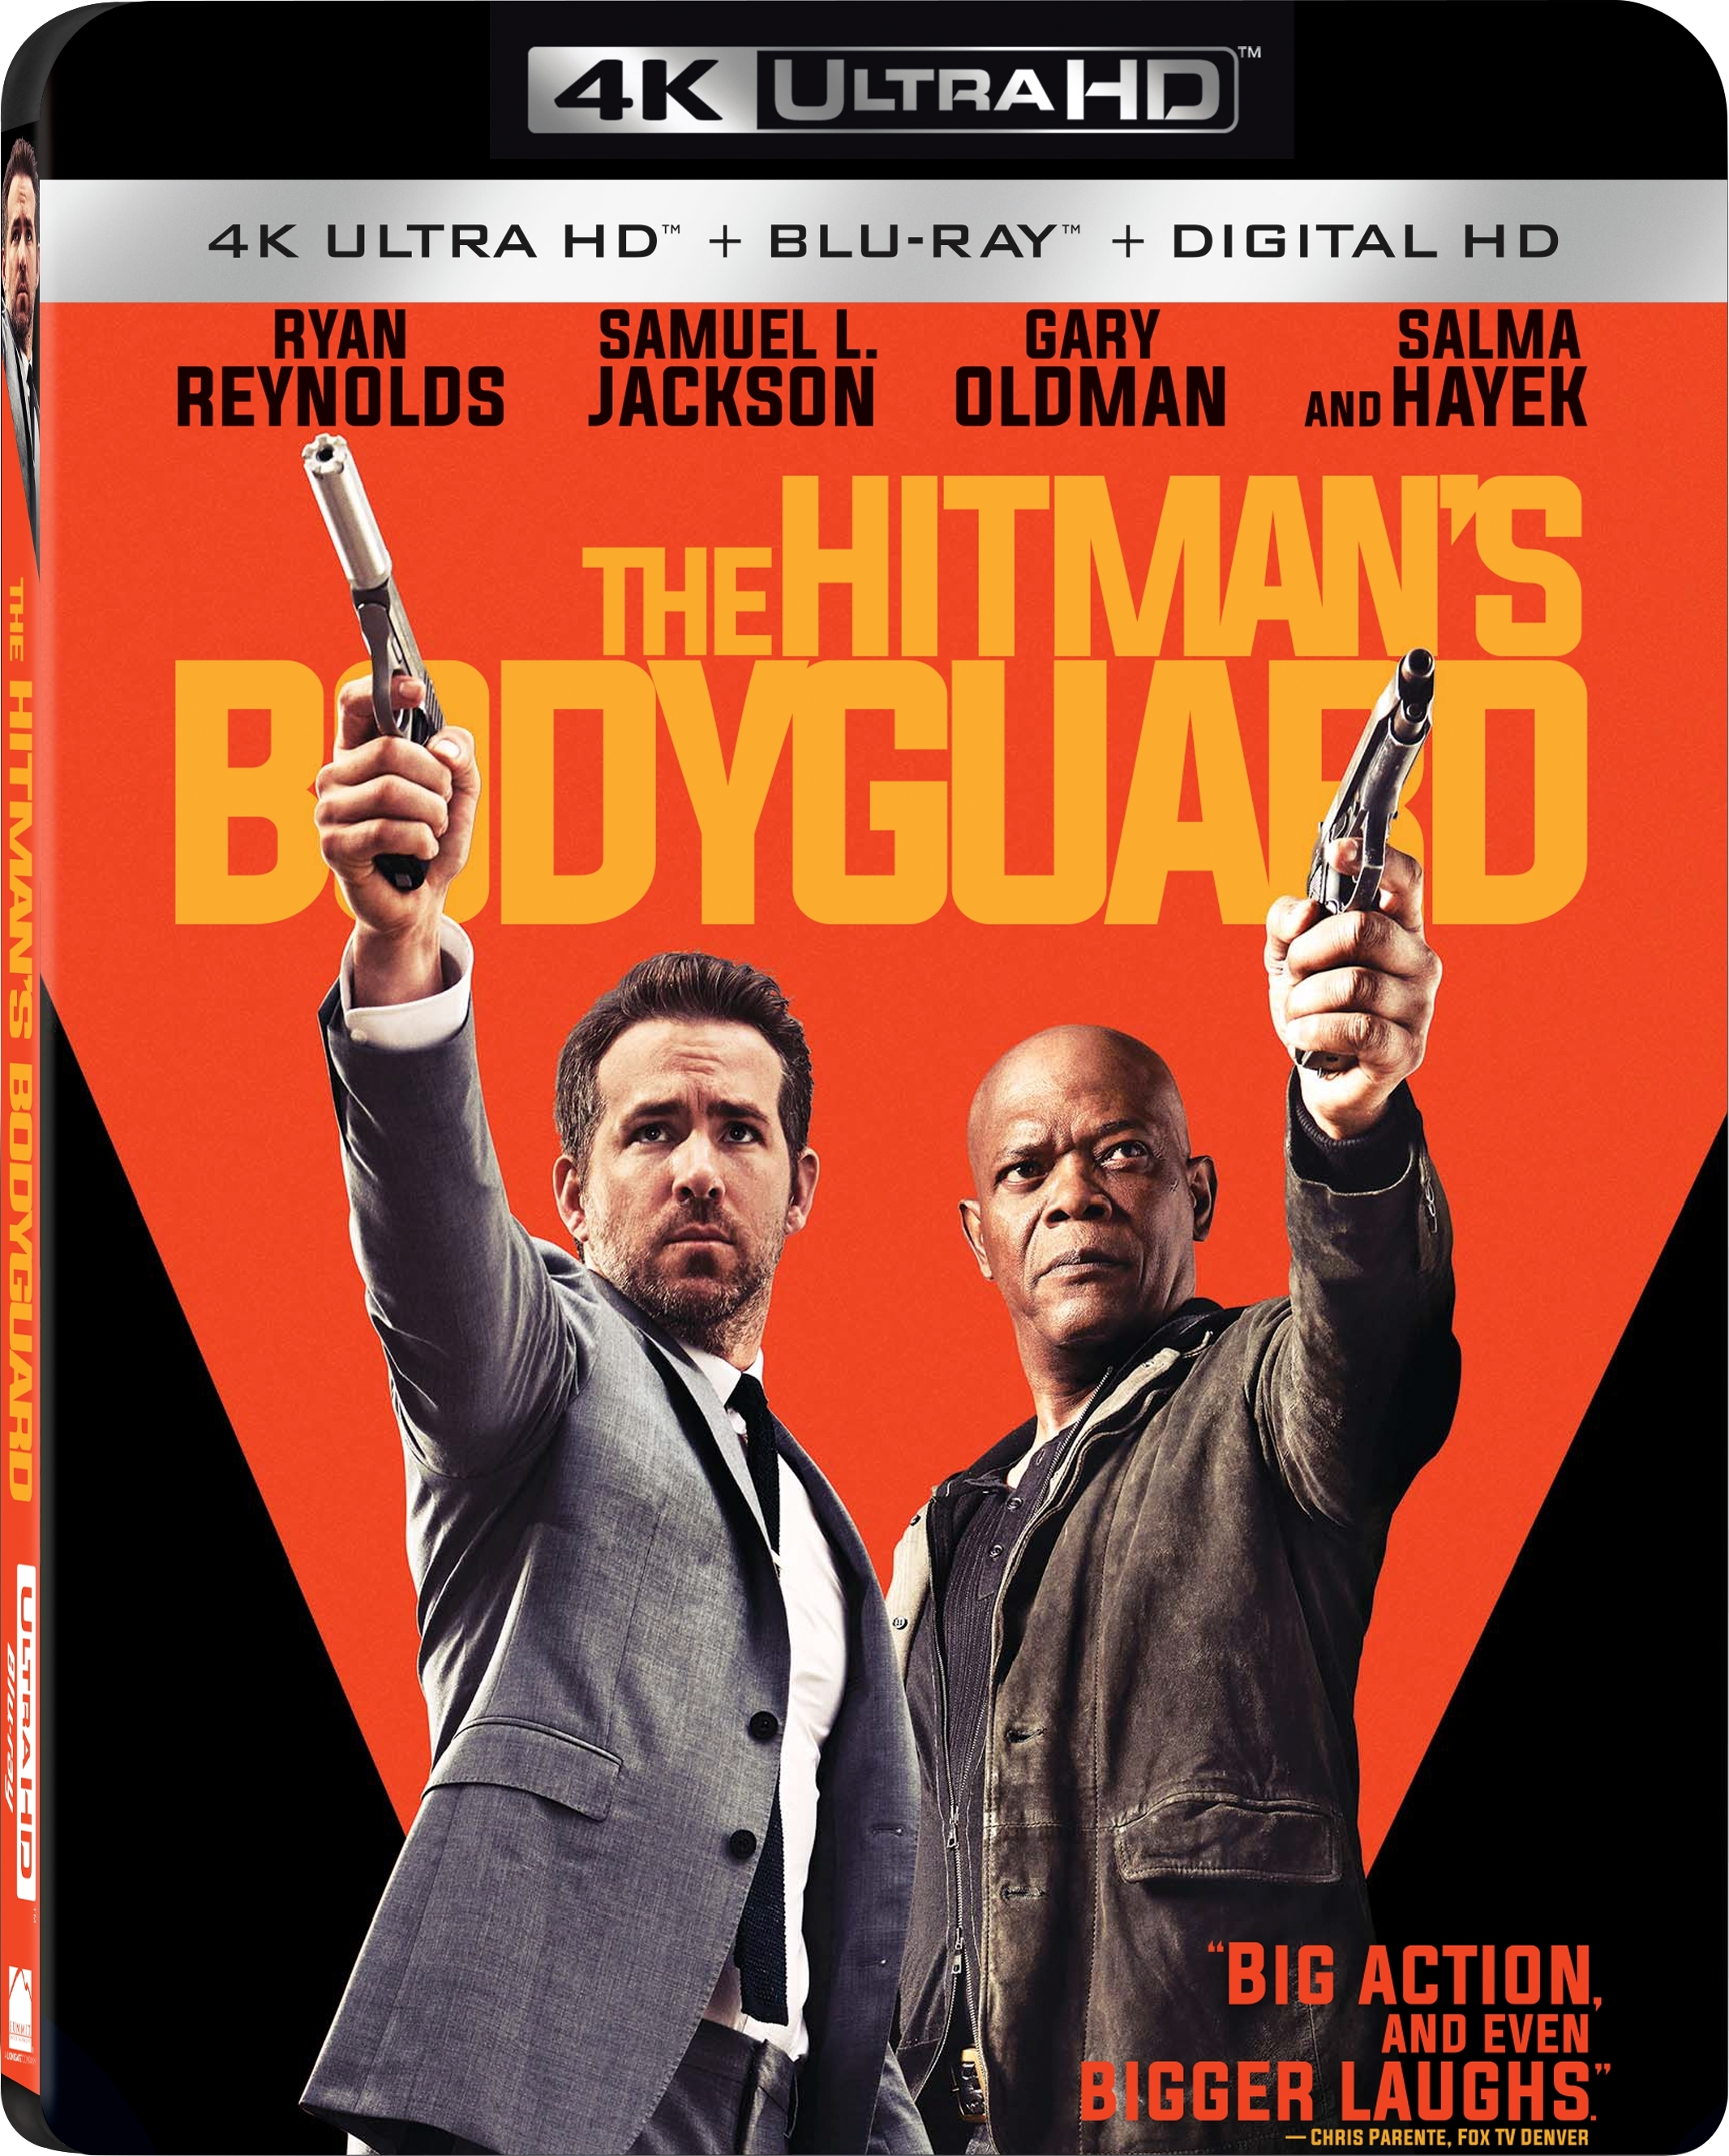 The Hitmans Bodyguard 4K (2017) UHD Ultra HD Blu-ray